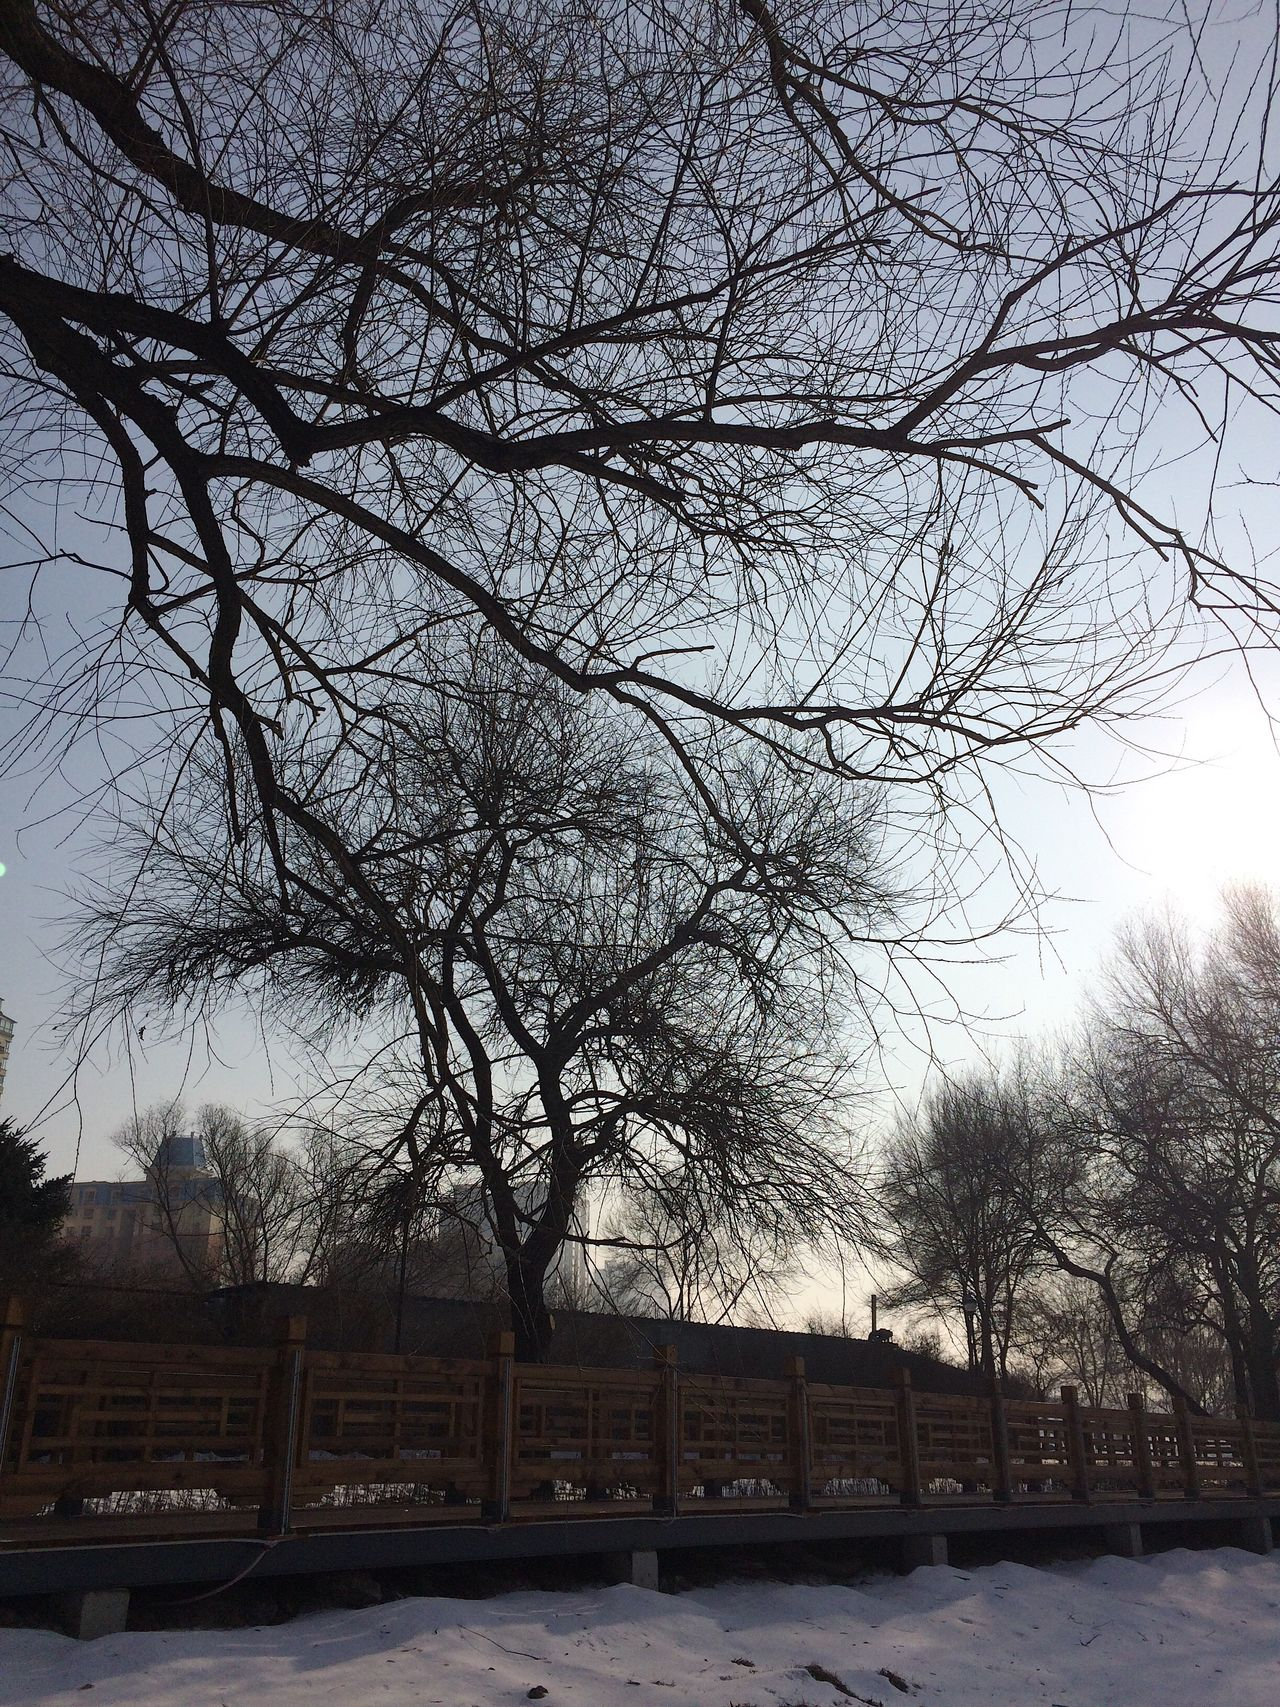 The winter sun Tree Nature Snow Winter Outdoors Beauty In Nature